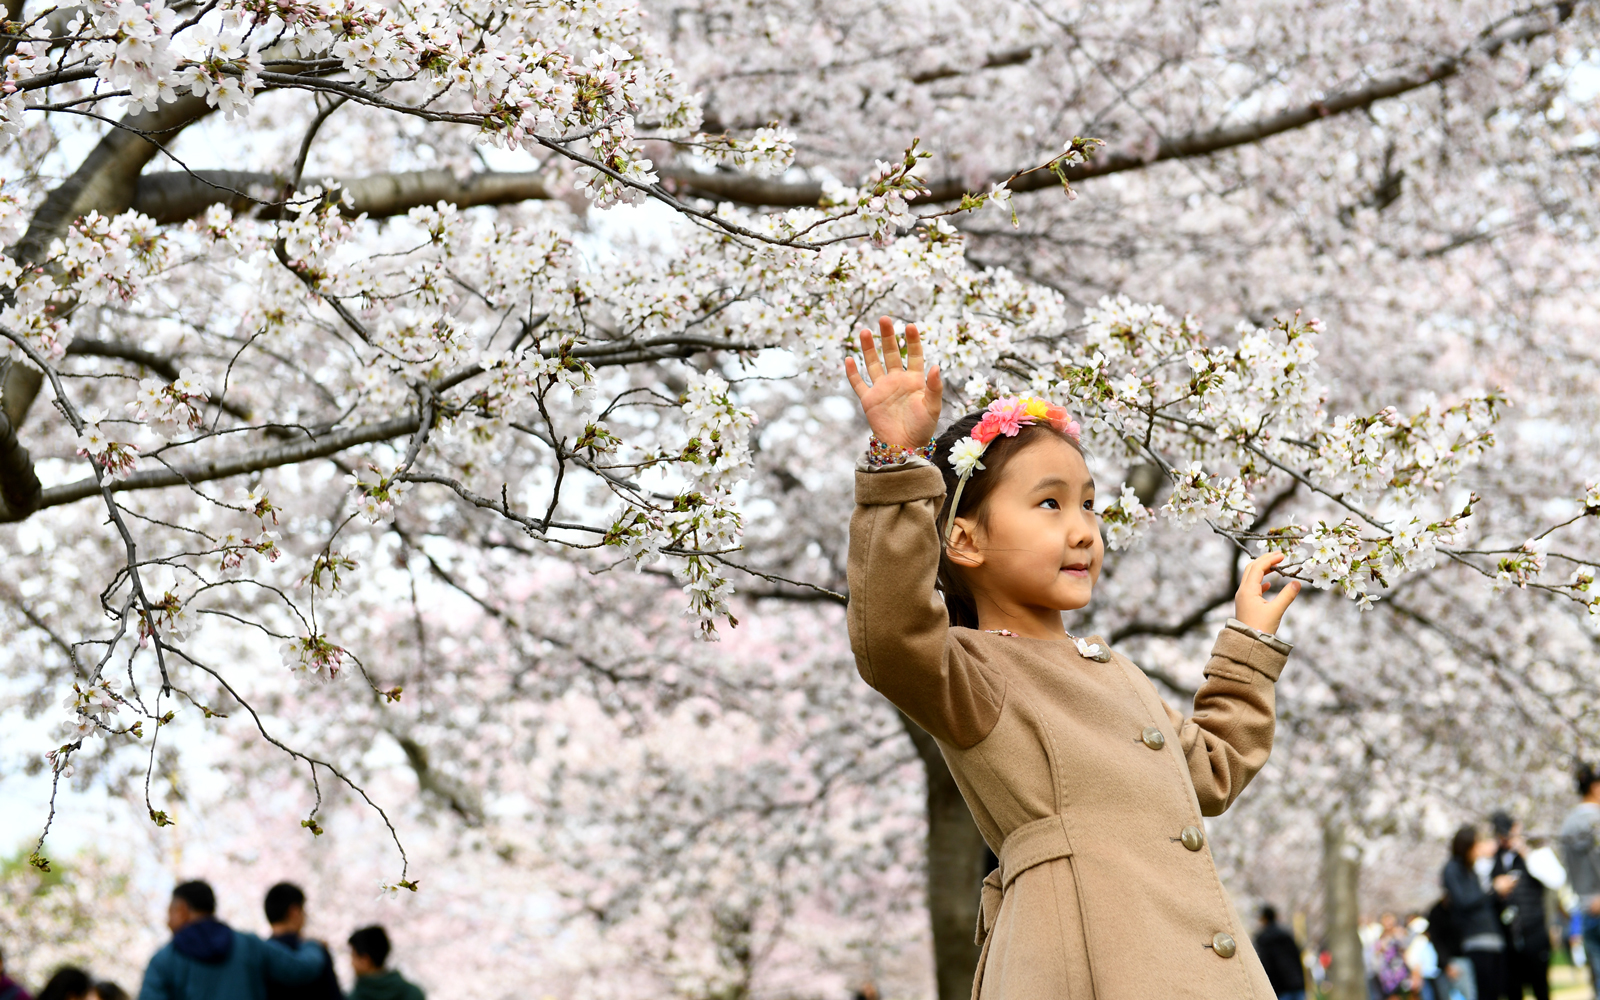 Guamaral Sod-Erdene, 5, poses for photos for her mother, near the Washington Monument on Easter where most of the trees are in full bloom, unlike the tidal basin Sunday April 01, 2018